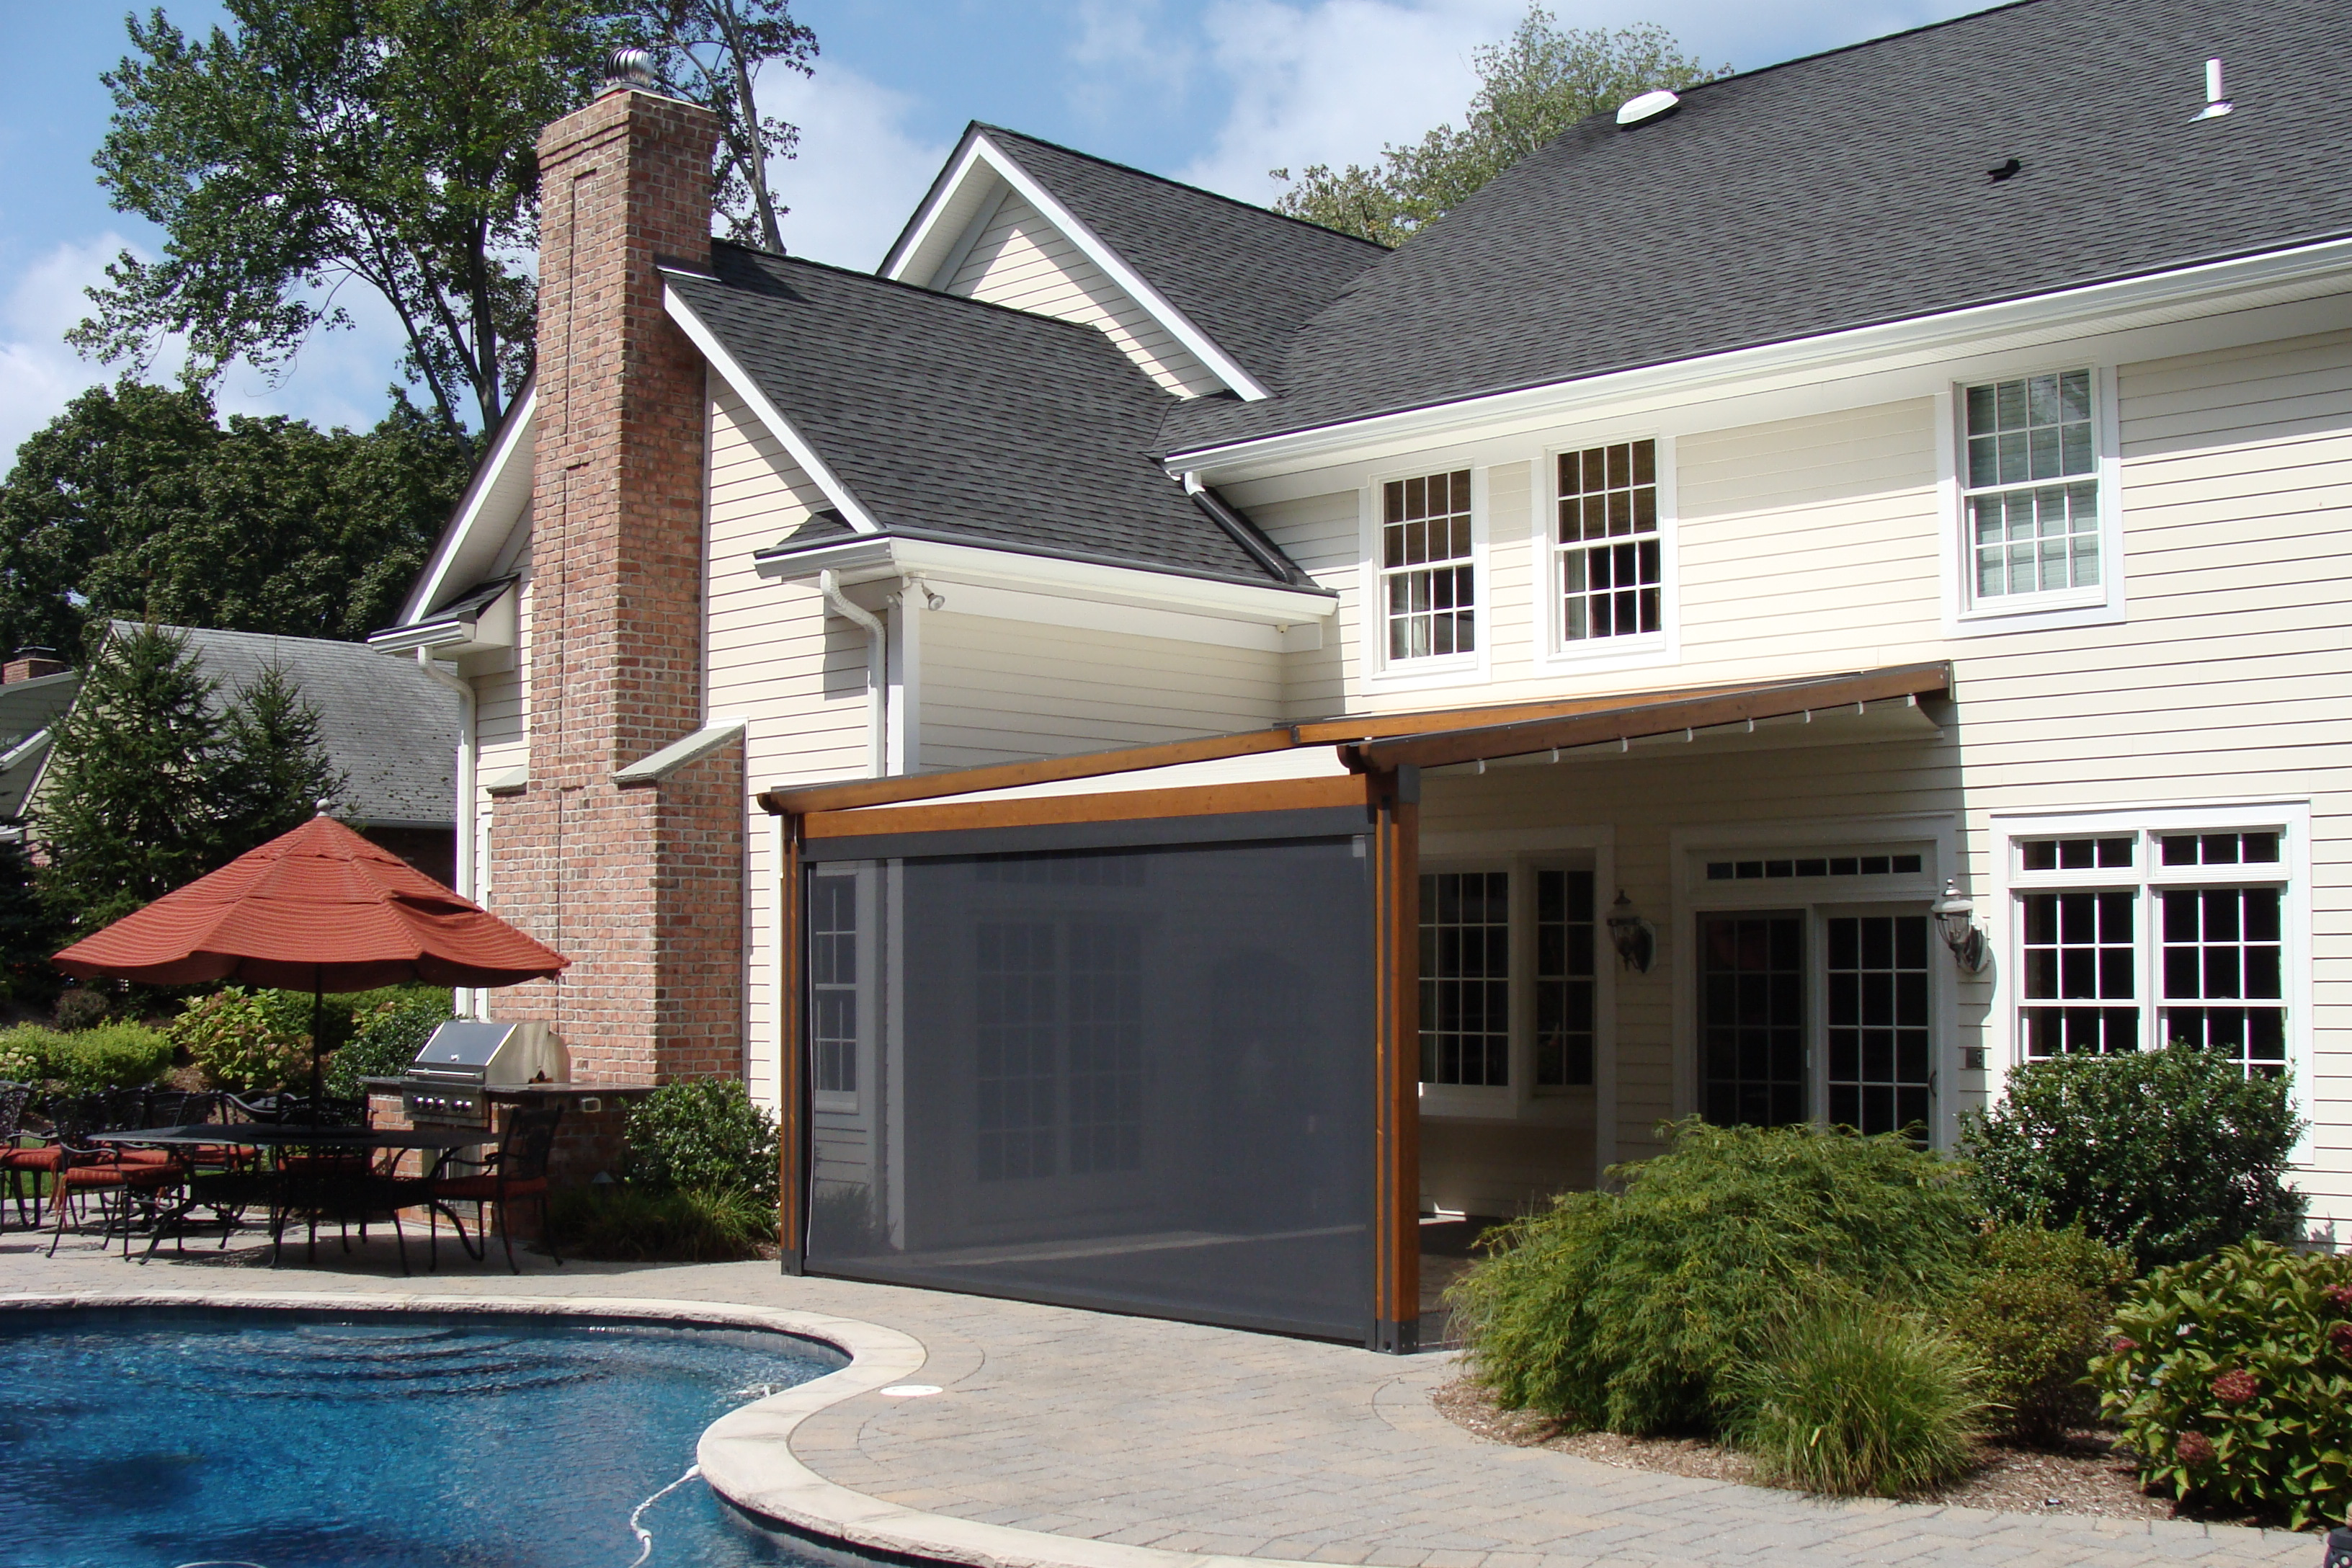 roof retractable awning nj mounted pics new ideas elite awnings selector